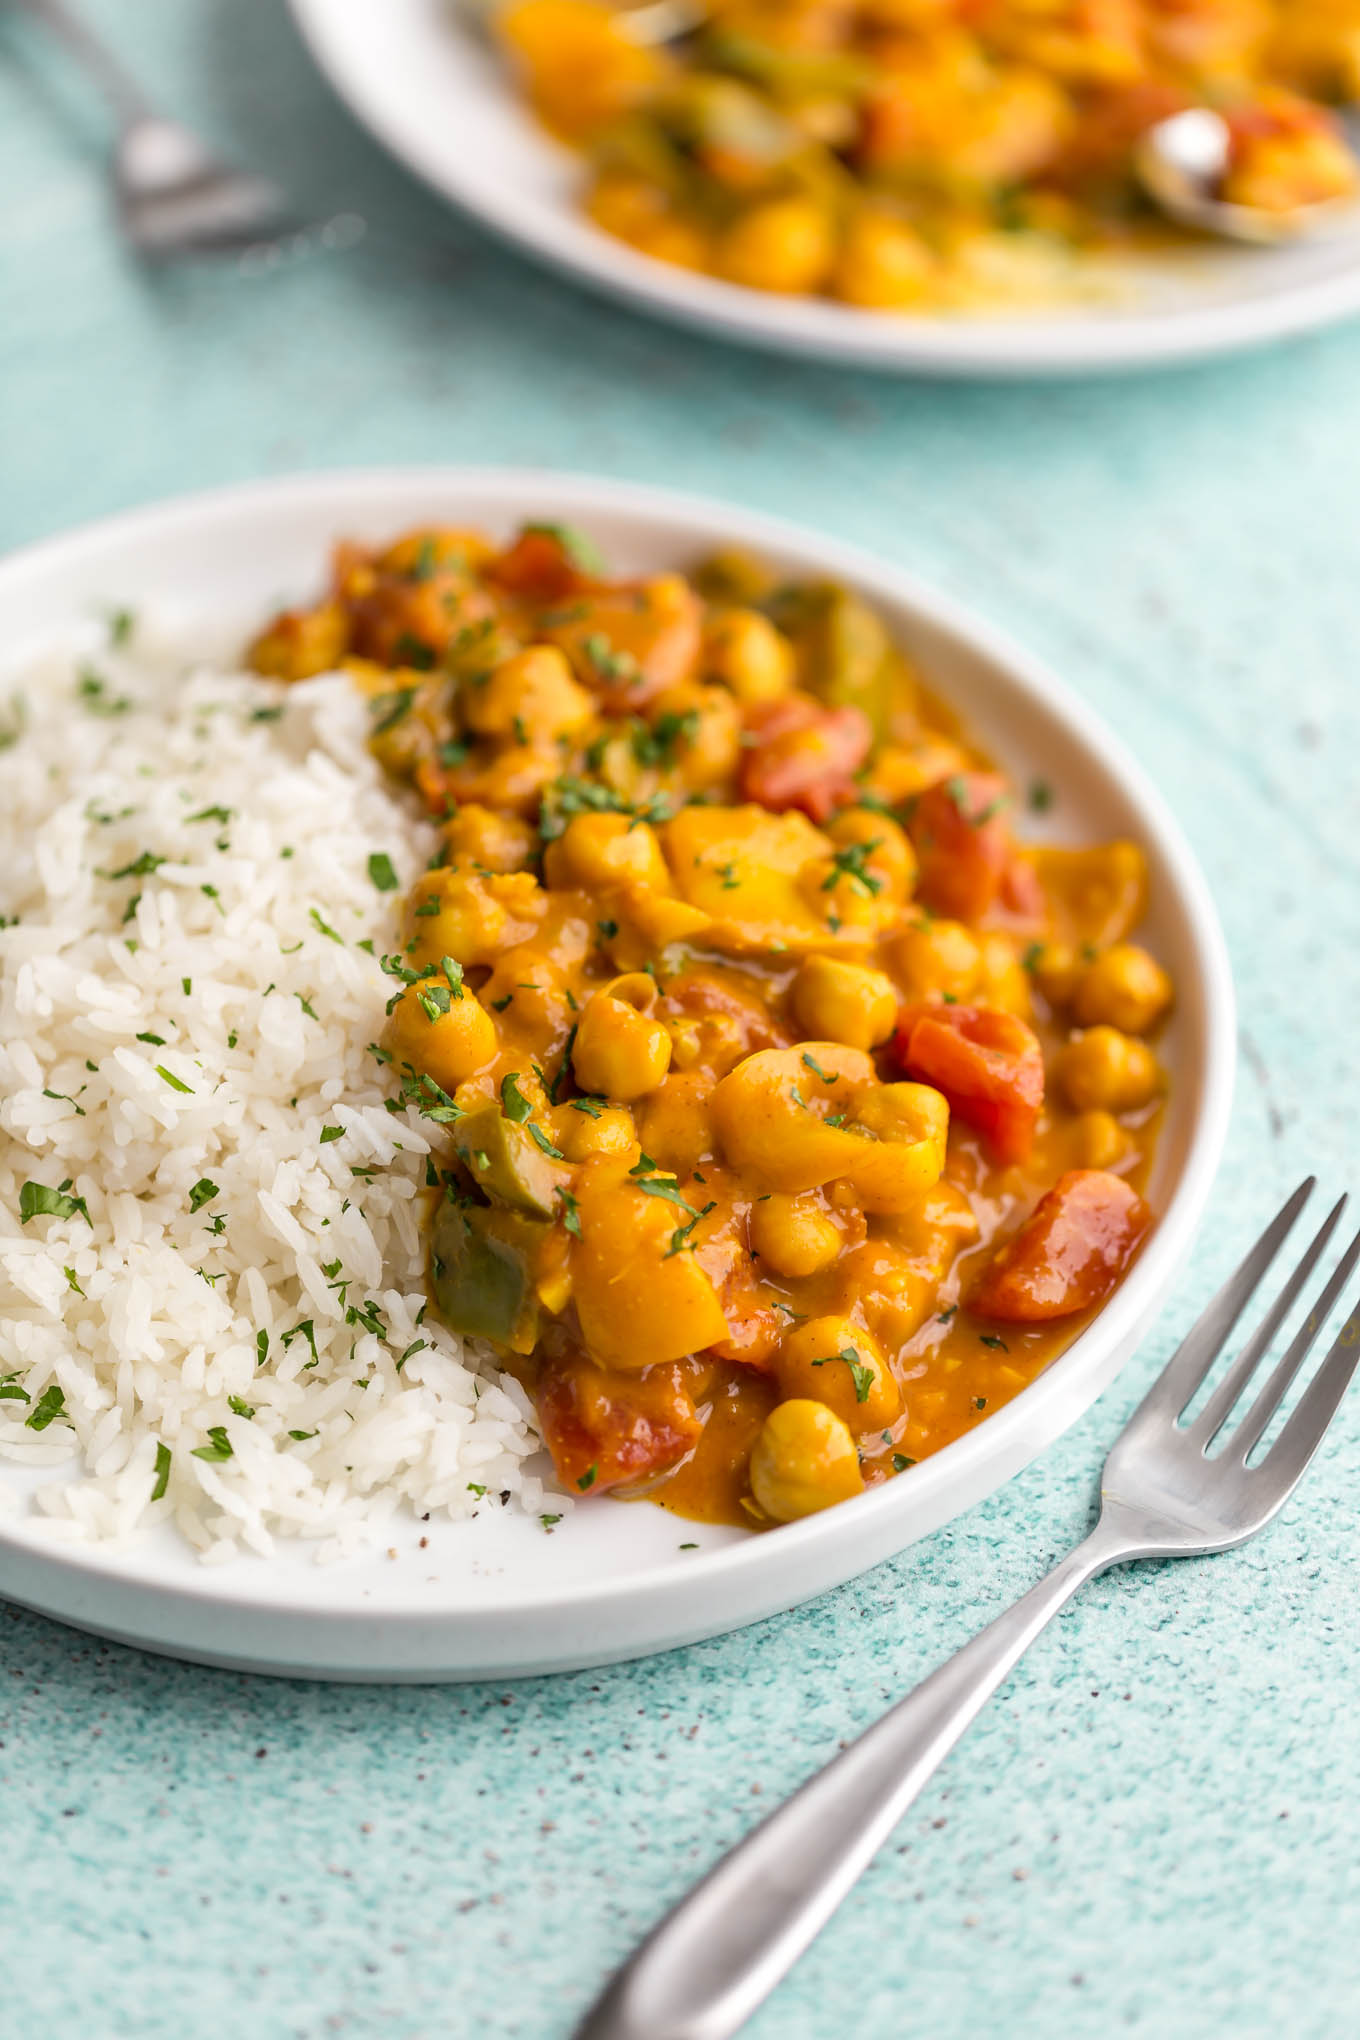 quick and easy vegetarian curry recipe made with chickpeas and coconut milk